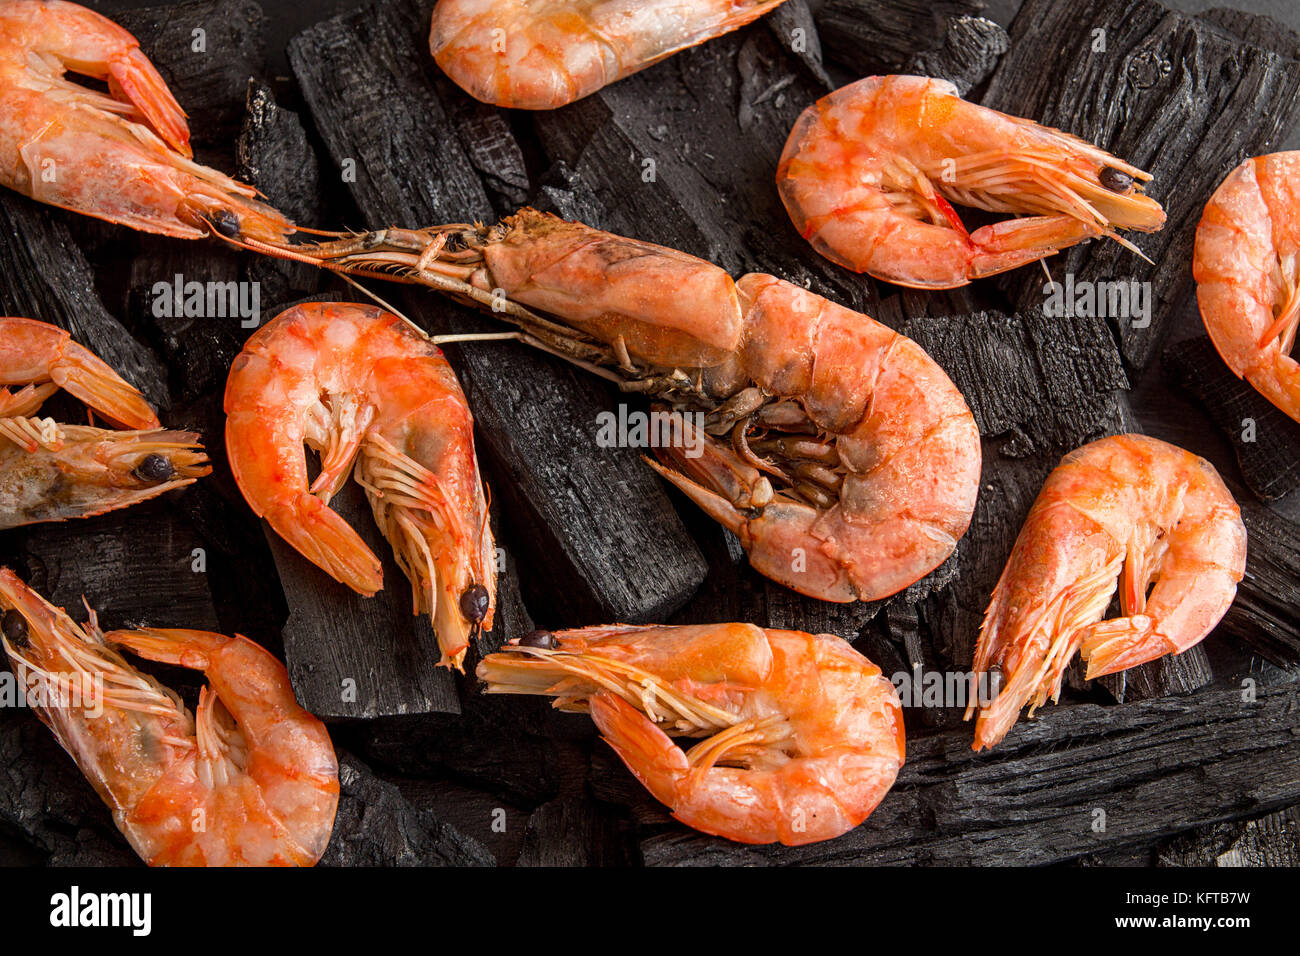 Overhead shrimps on charcoal. Seefood barbecue concept. Healthy diet food. Top view - Stock Image